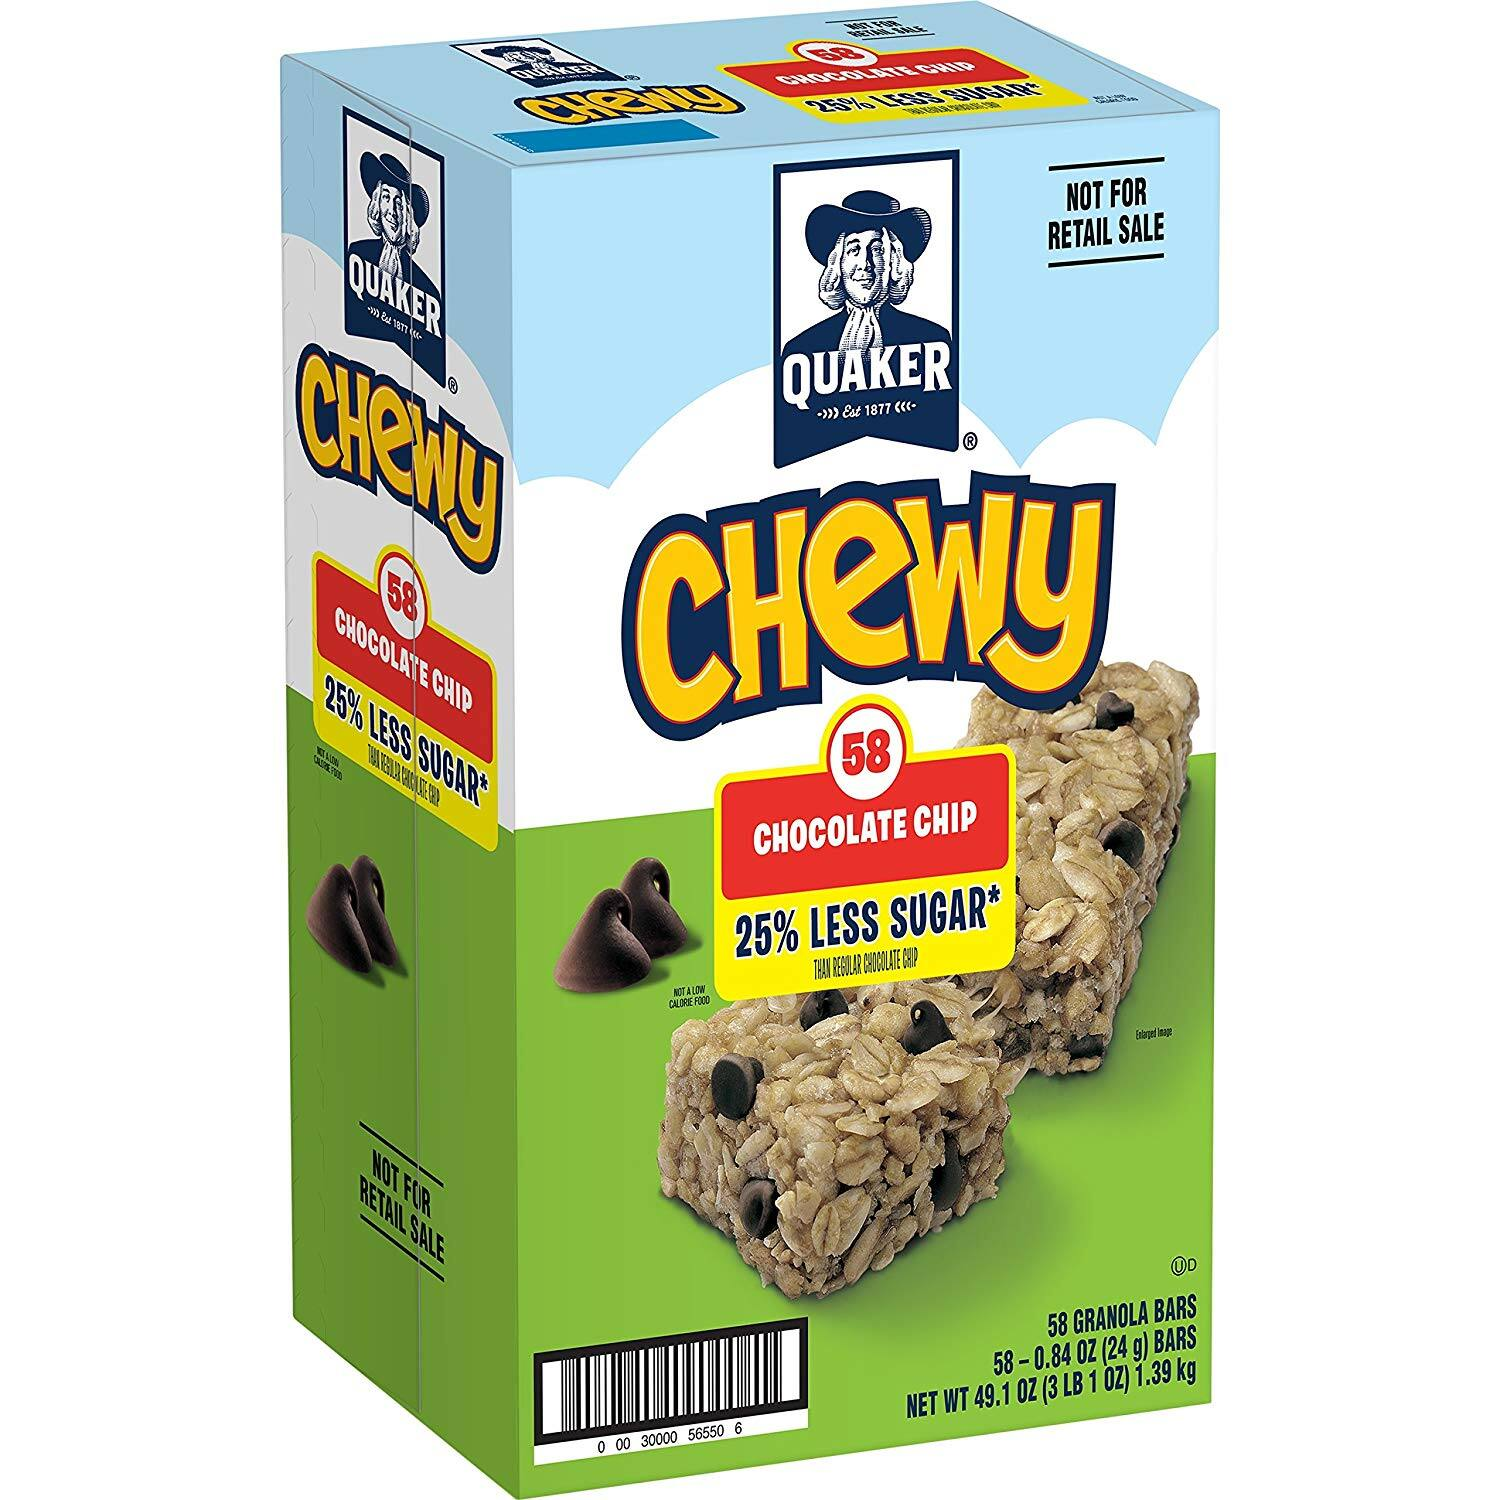 58-Count Quaker Chewy Granola Bars (25% Less Sugar, Chocolate Chip) for $5.84